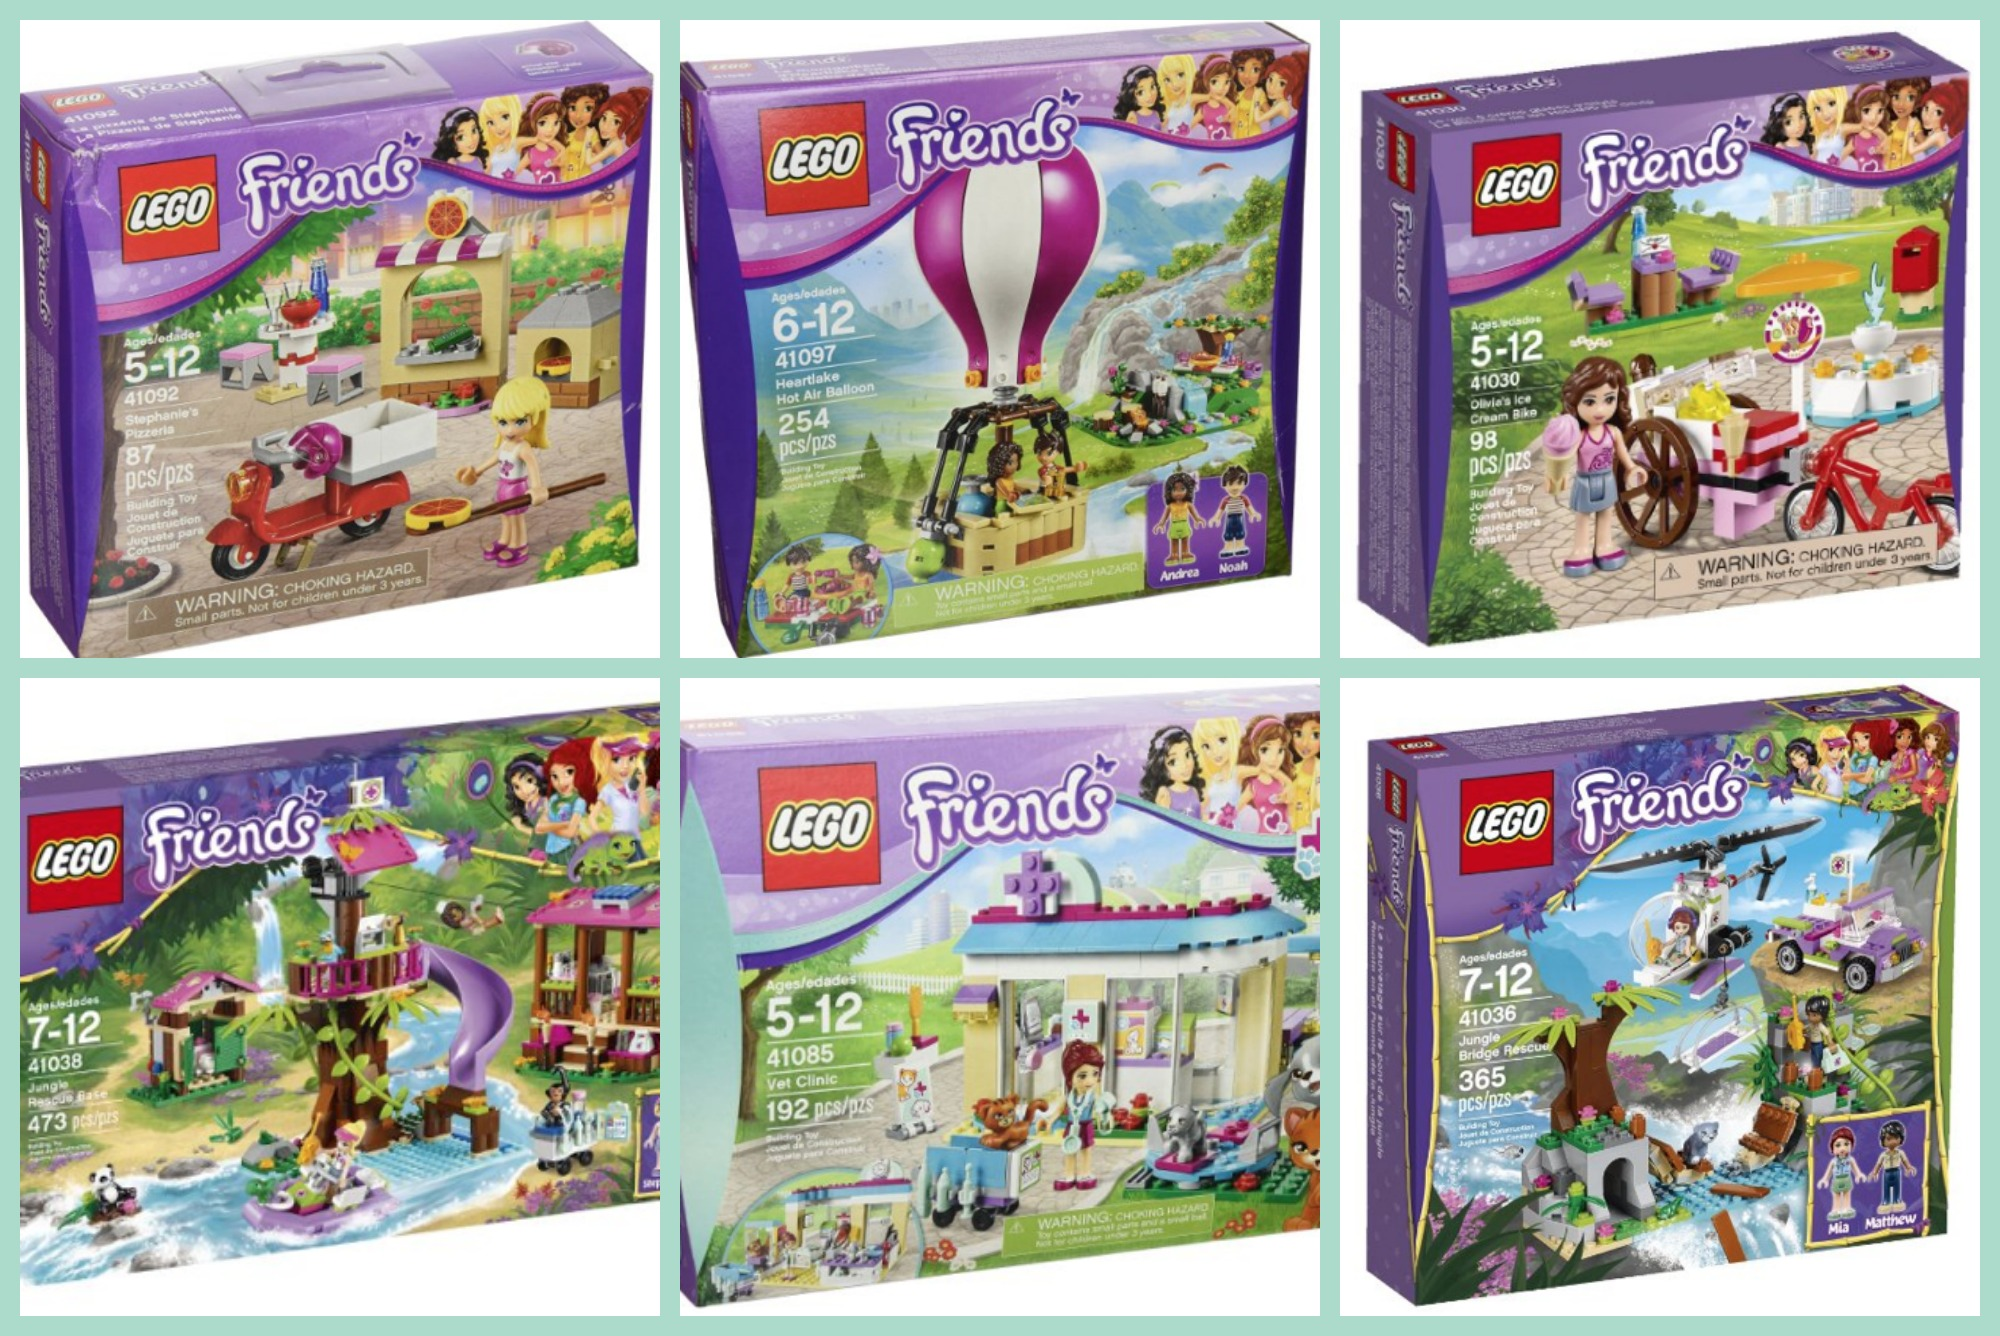 Lego Friends Sets Up To 33 Off Prices As Low As 799